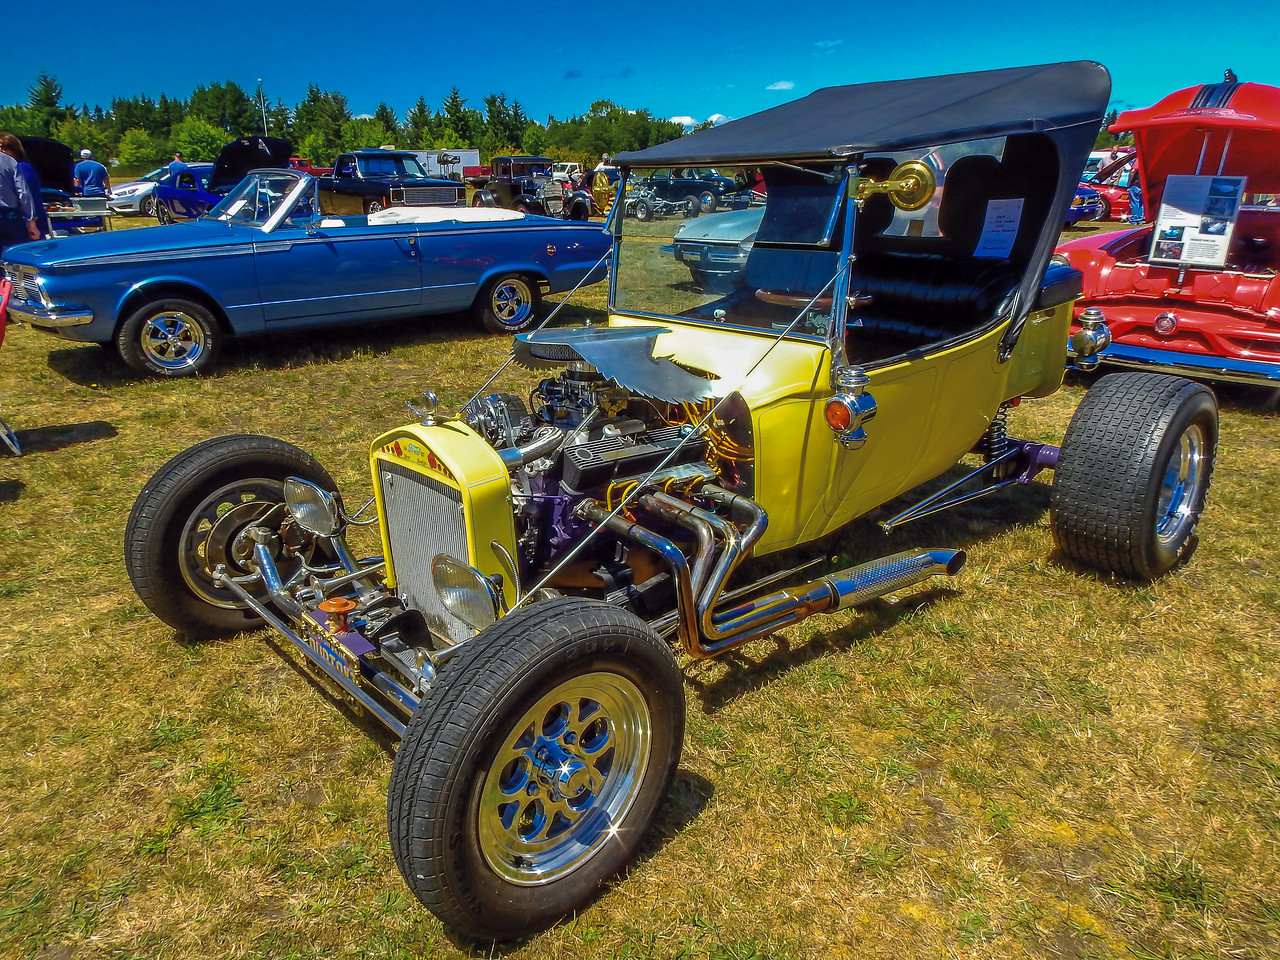 hogs dogs rods car show